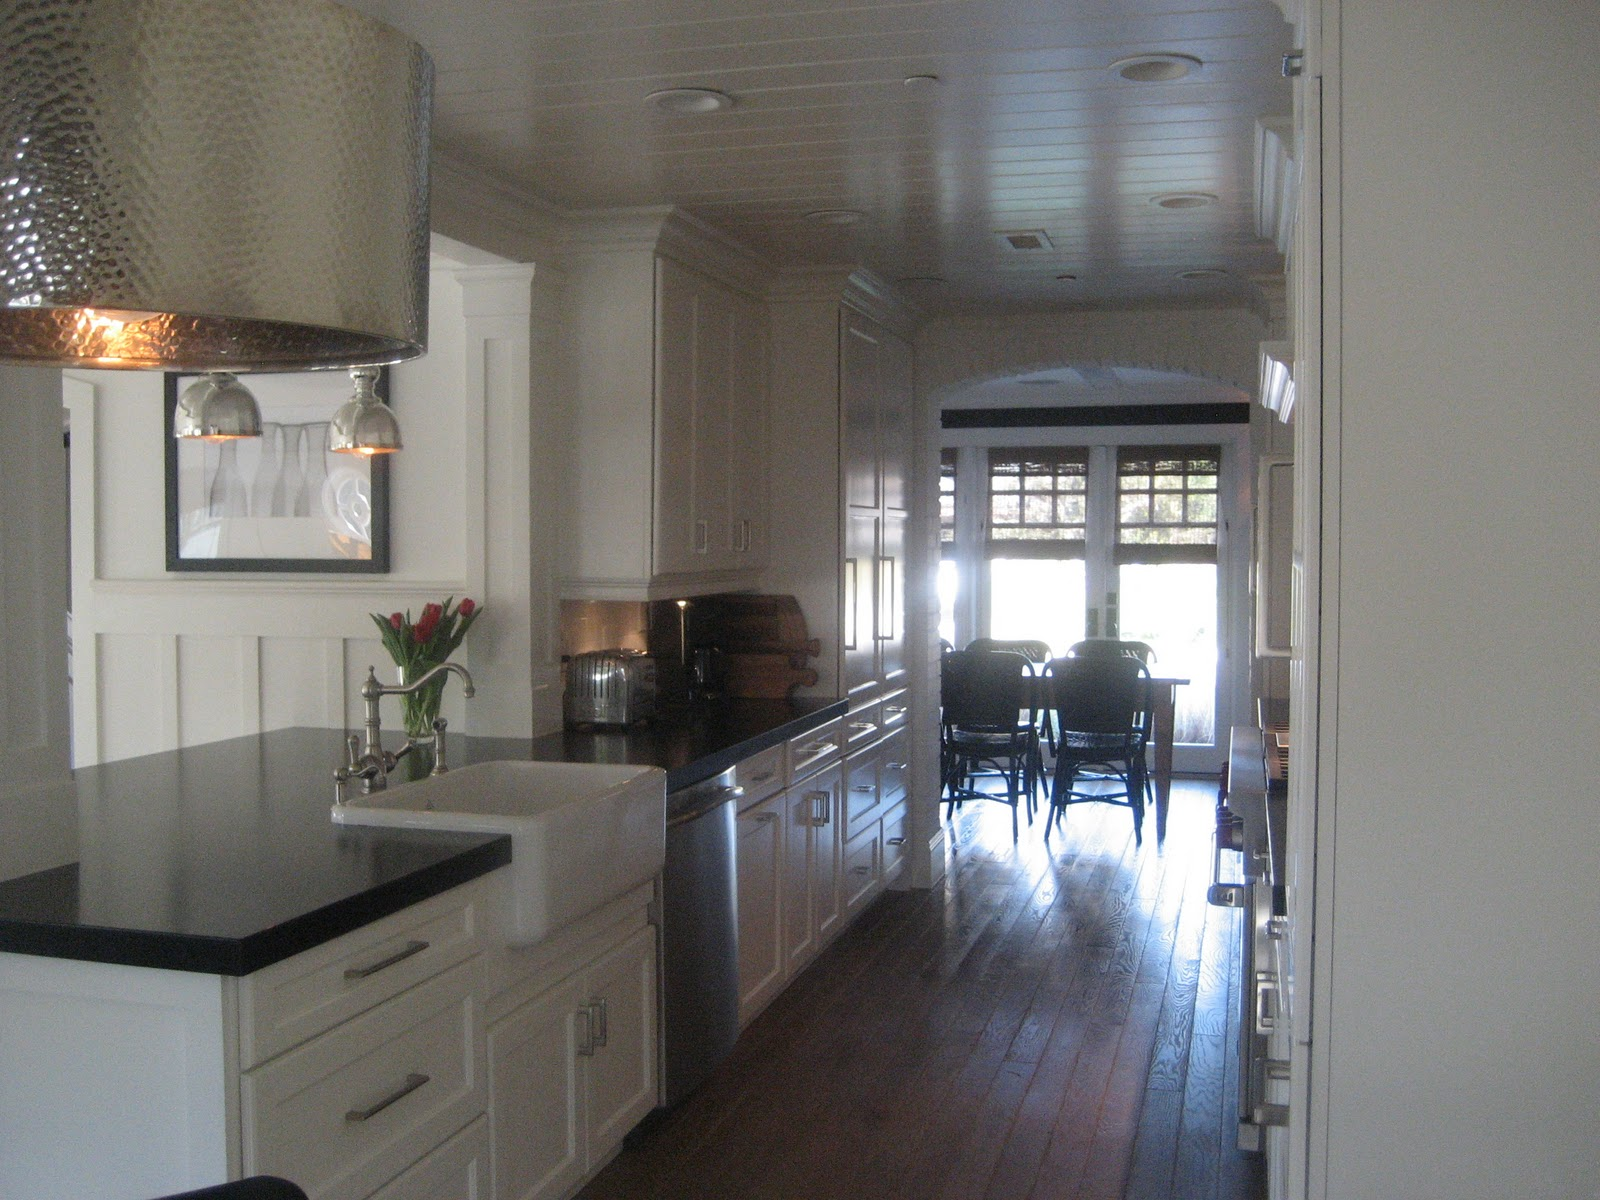 The Pendant Lamp Over Kitchen Table Is From Barbara Cosgrove And Pendants Counter Are Jamie Young So Reasonably D Just